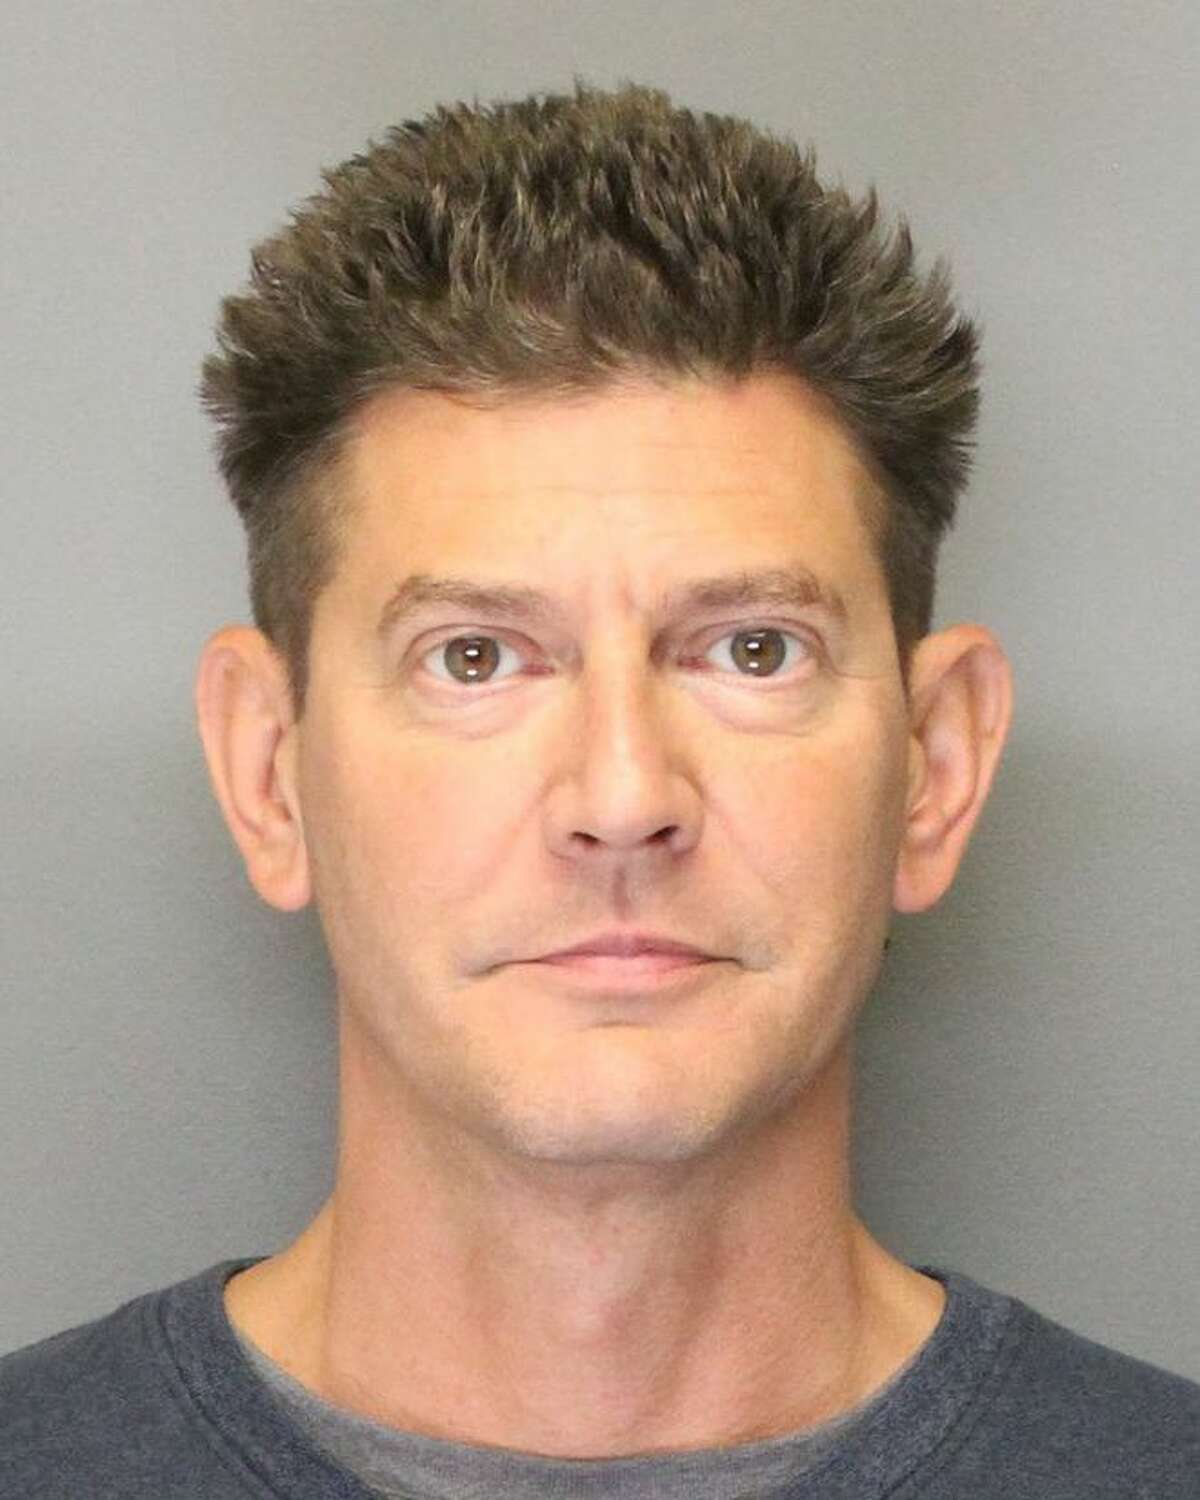 Police say Kevin Douglas Limbaugh, 48, is the suspect who ambushed and killed Davis police officer Natalie Corona Thursday night.